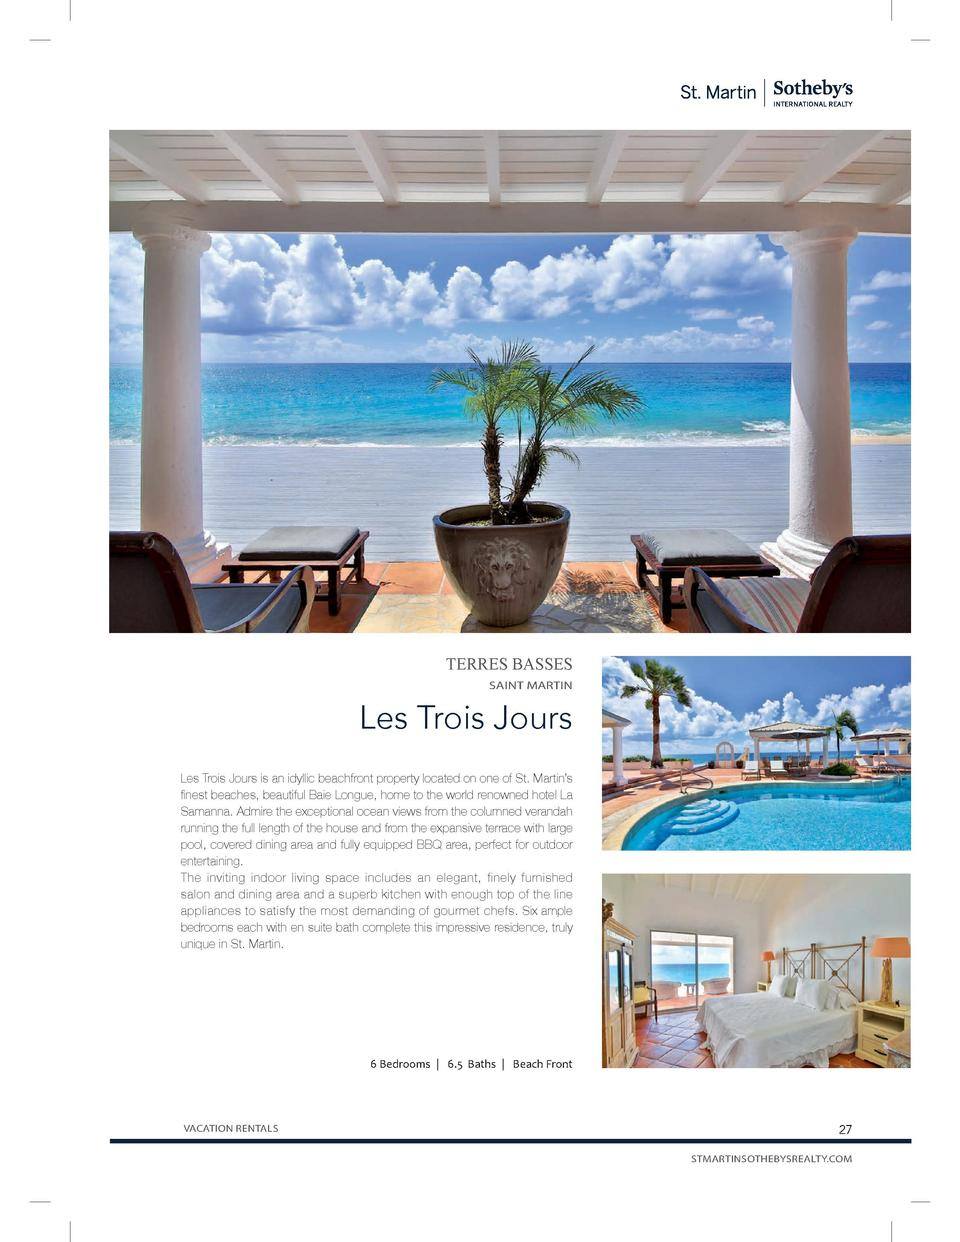 TERRES BASSES SAINT MARTIN  Les Trois Jours Les Trois Jours is an idyllic beachfront property located on one of St. Martin...